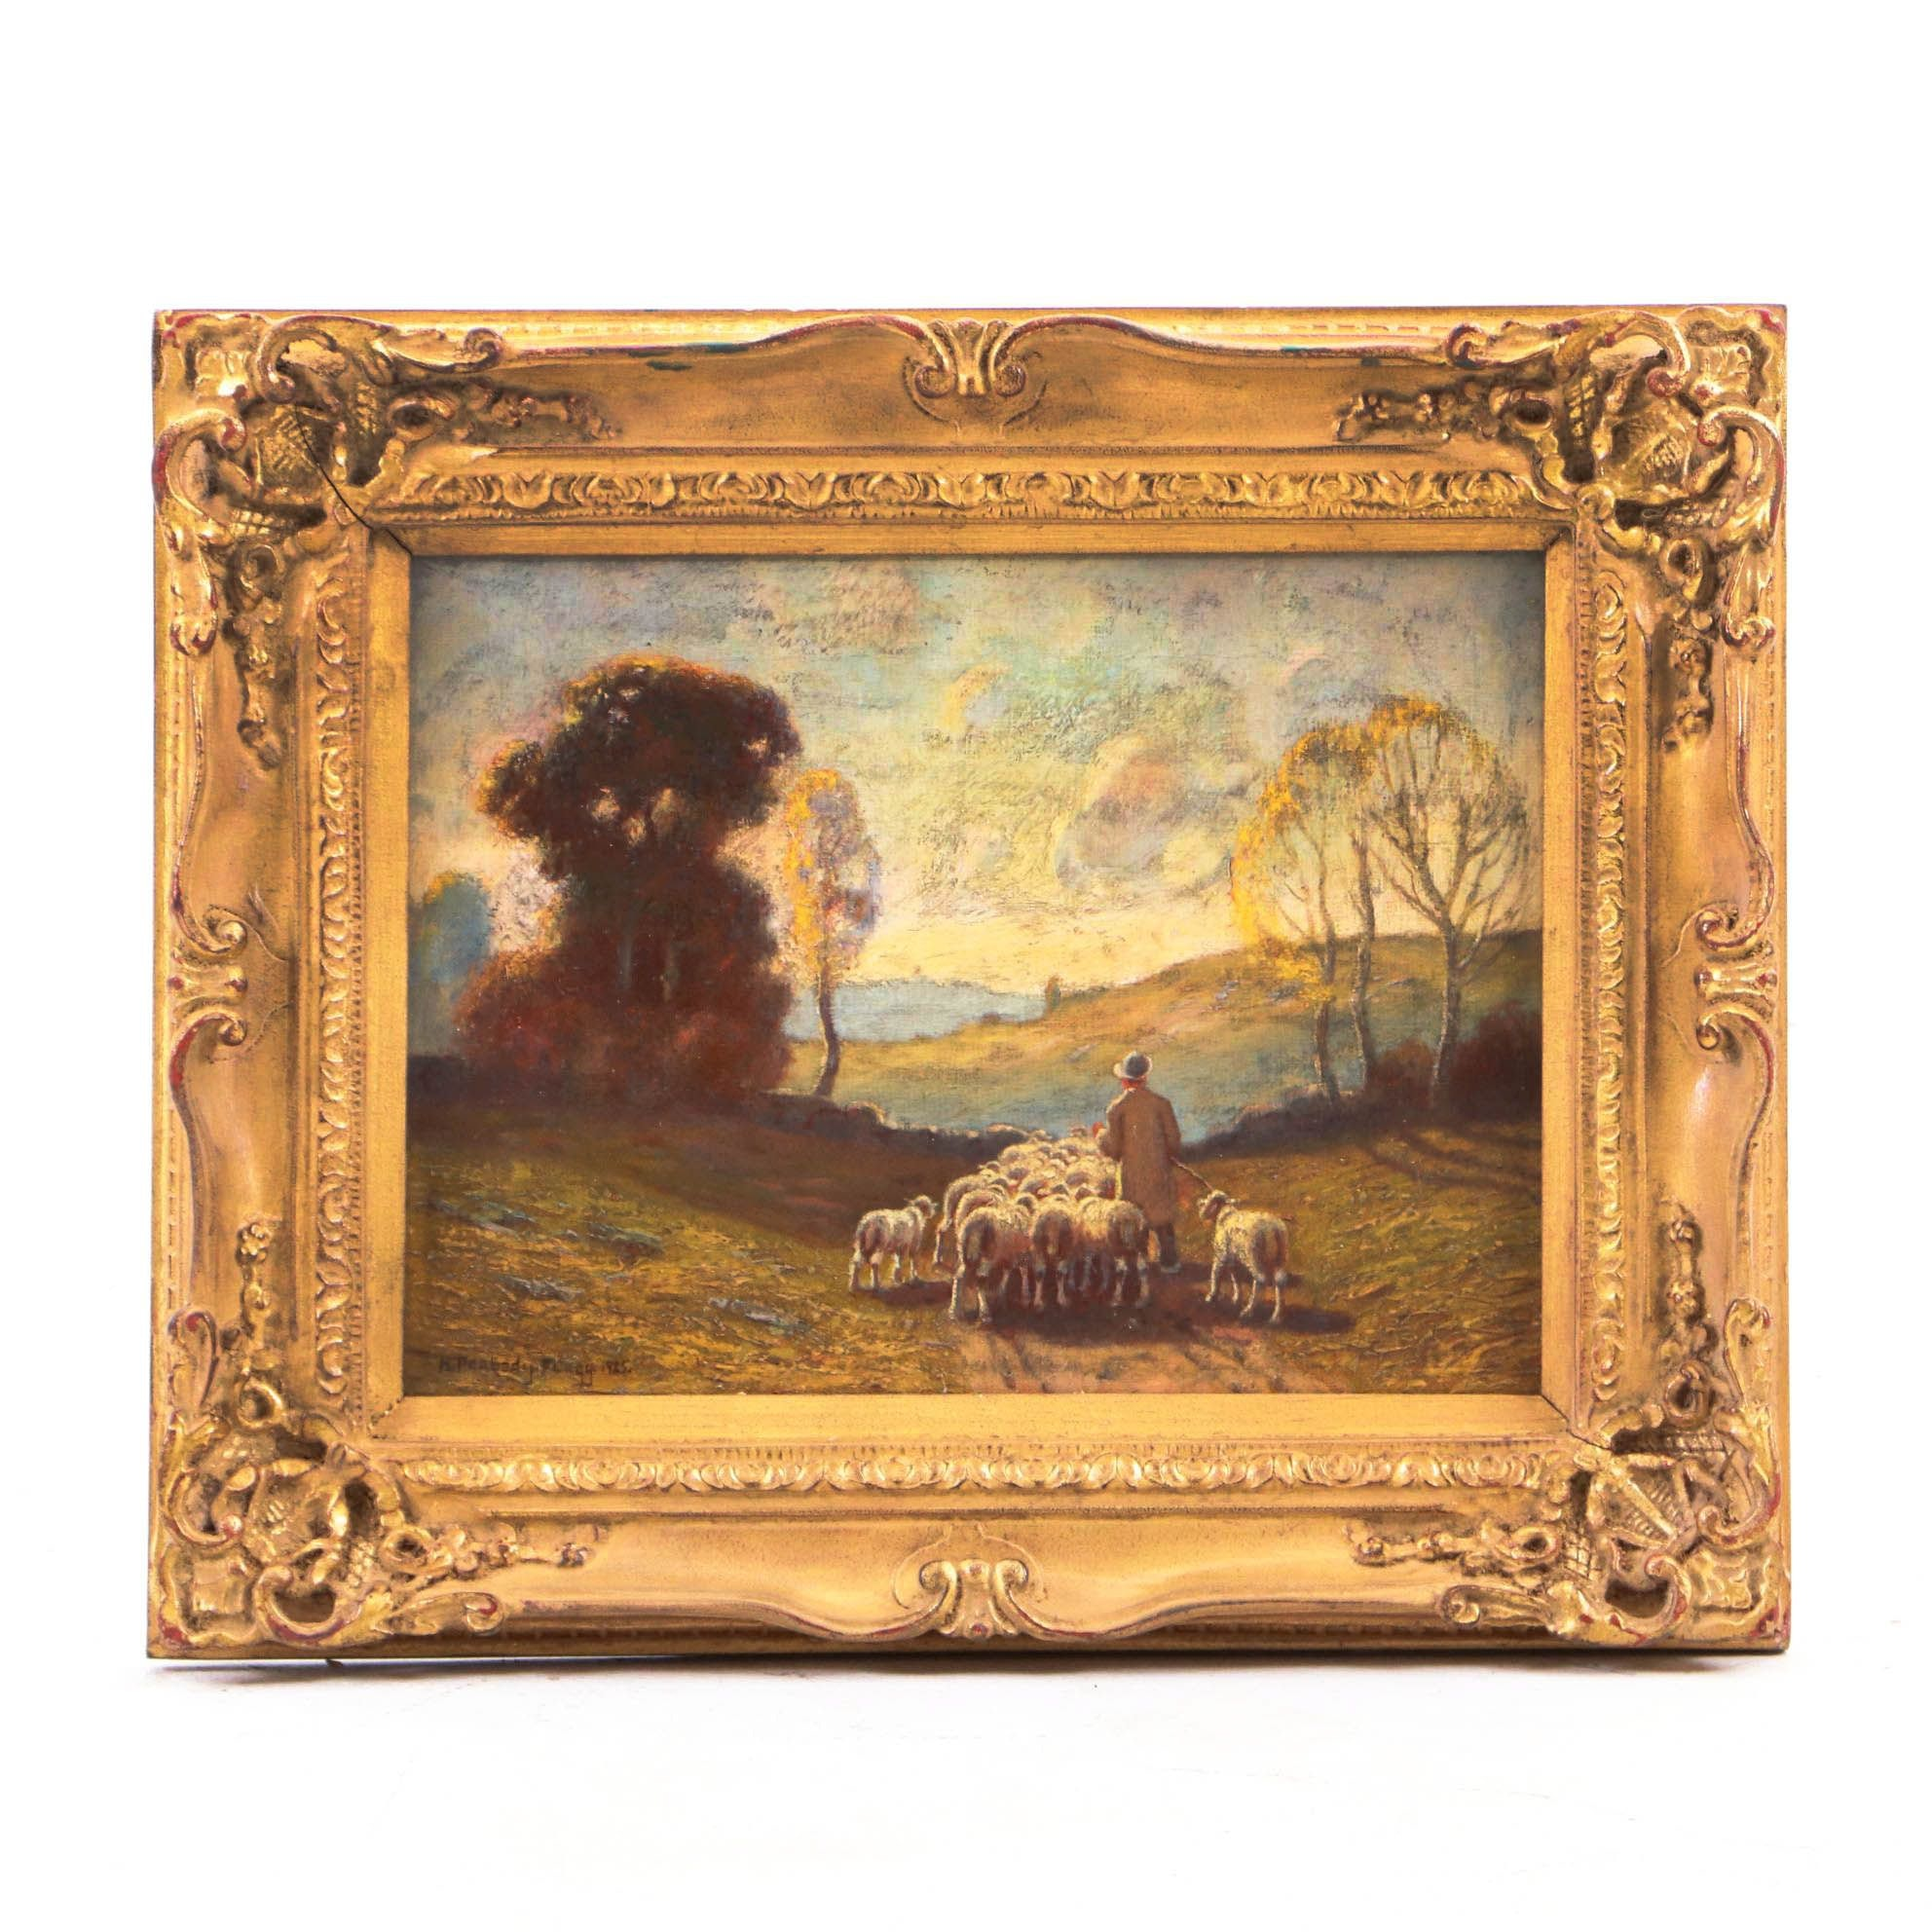 Hiram Peabody Flagg Landscape Oil Painting with Shepherd and Sheep